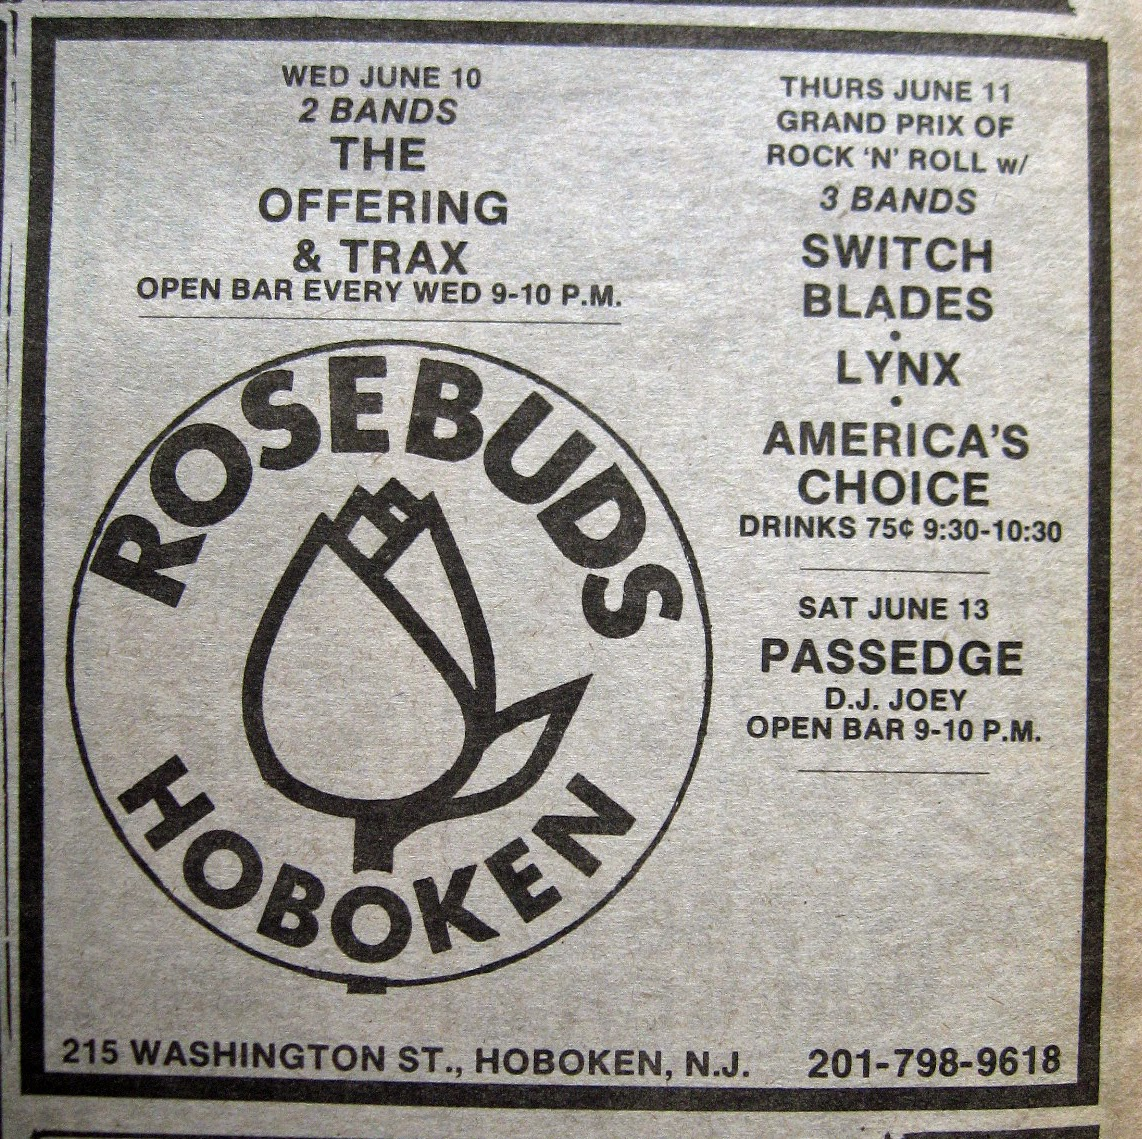 Rosebud's band line up 1981